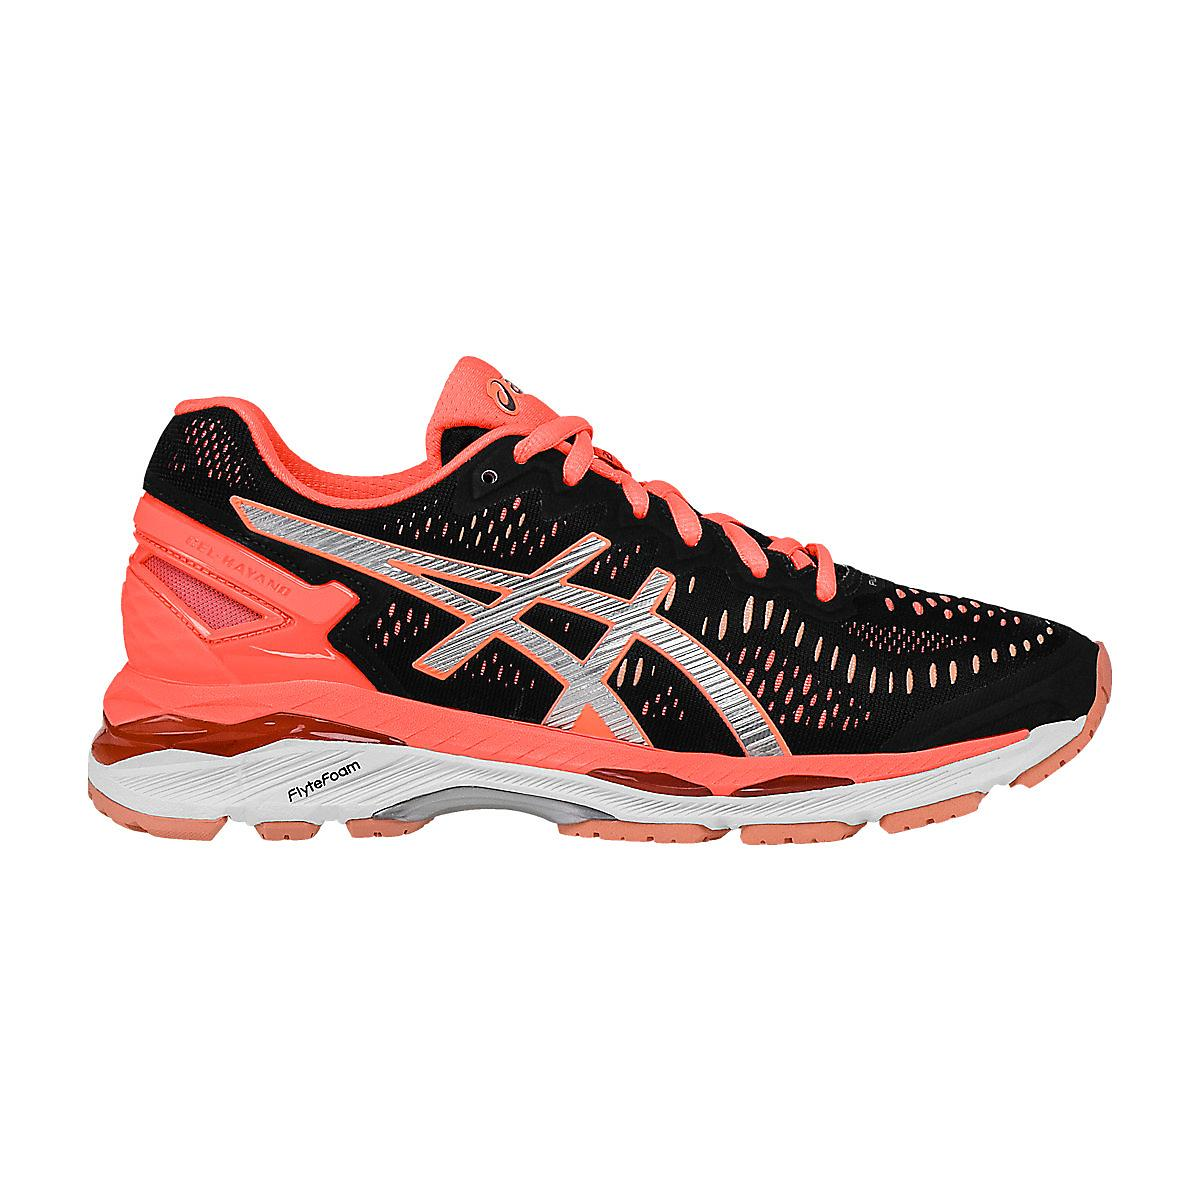 new york 8ffda 8e418 Women's GEL-Kayano 23